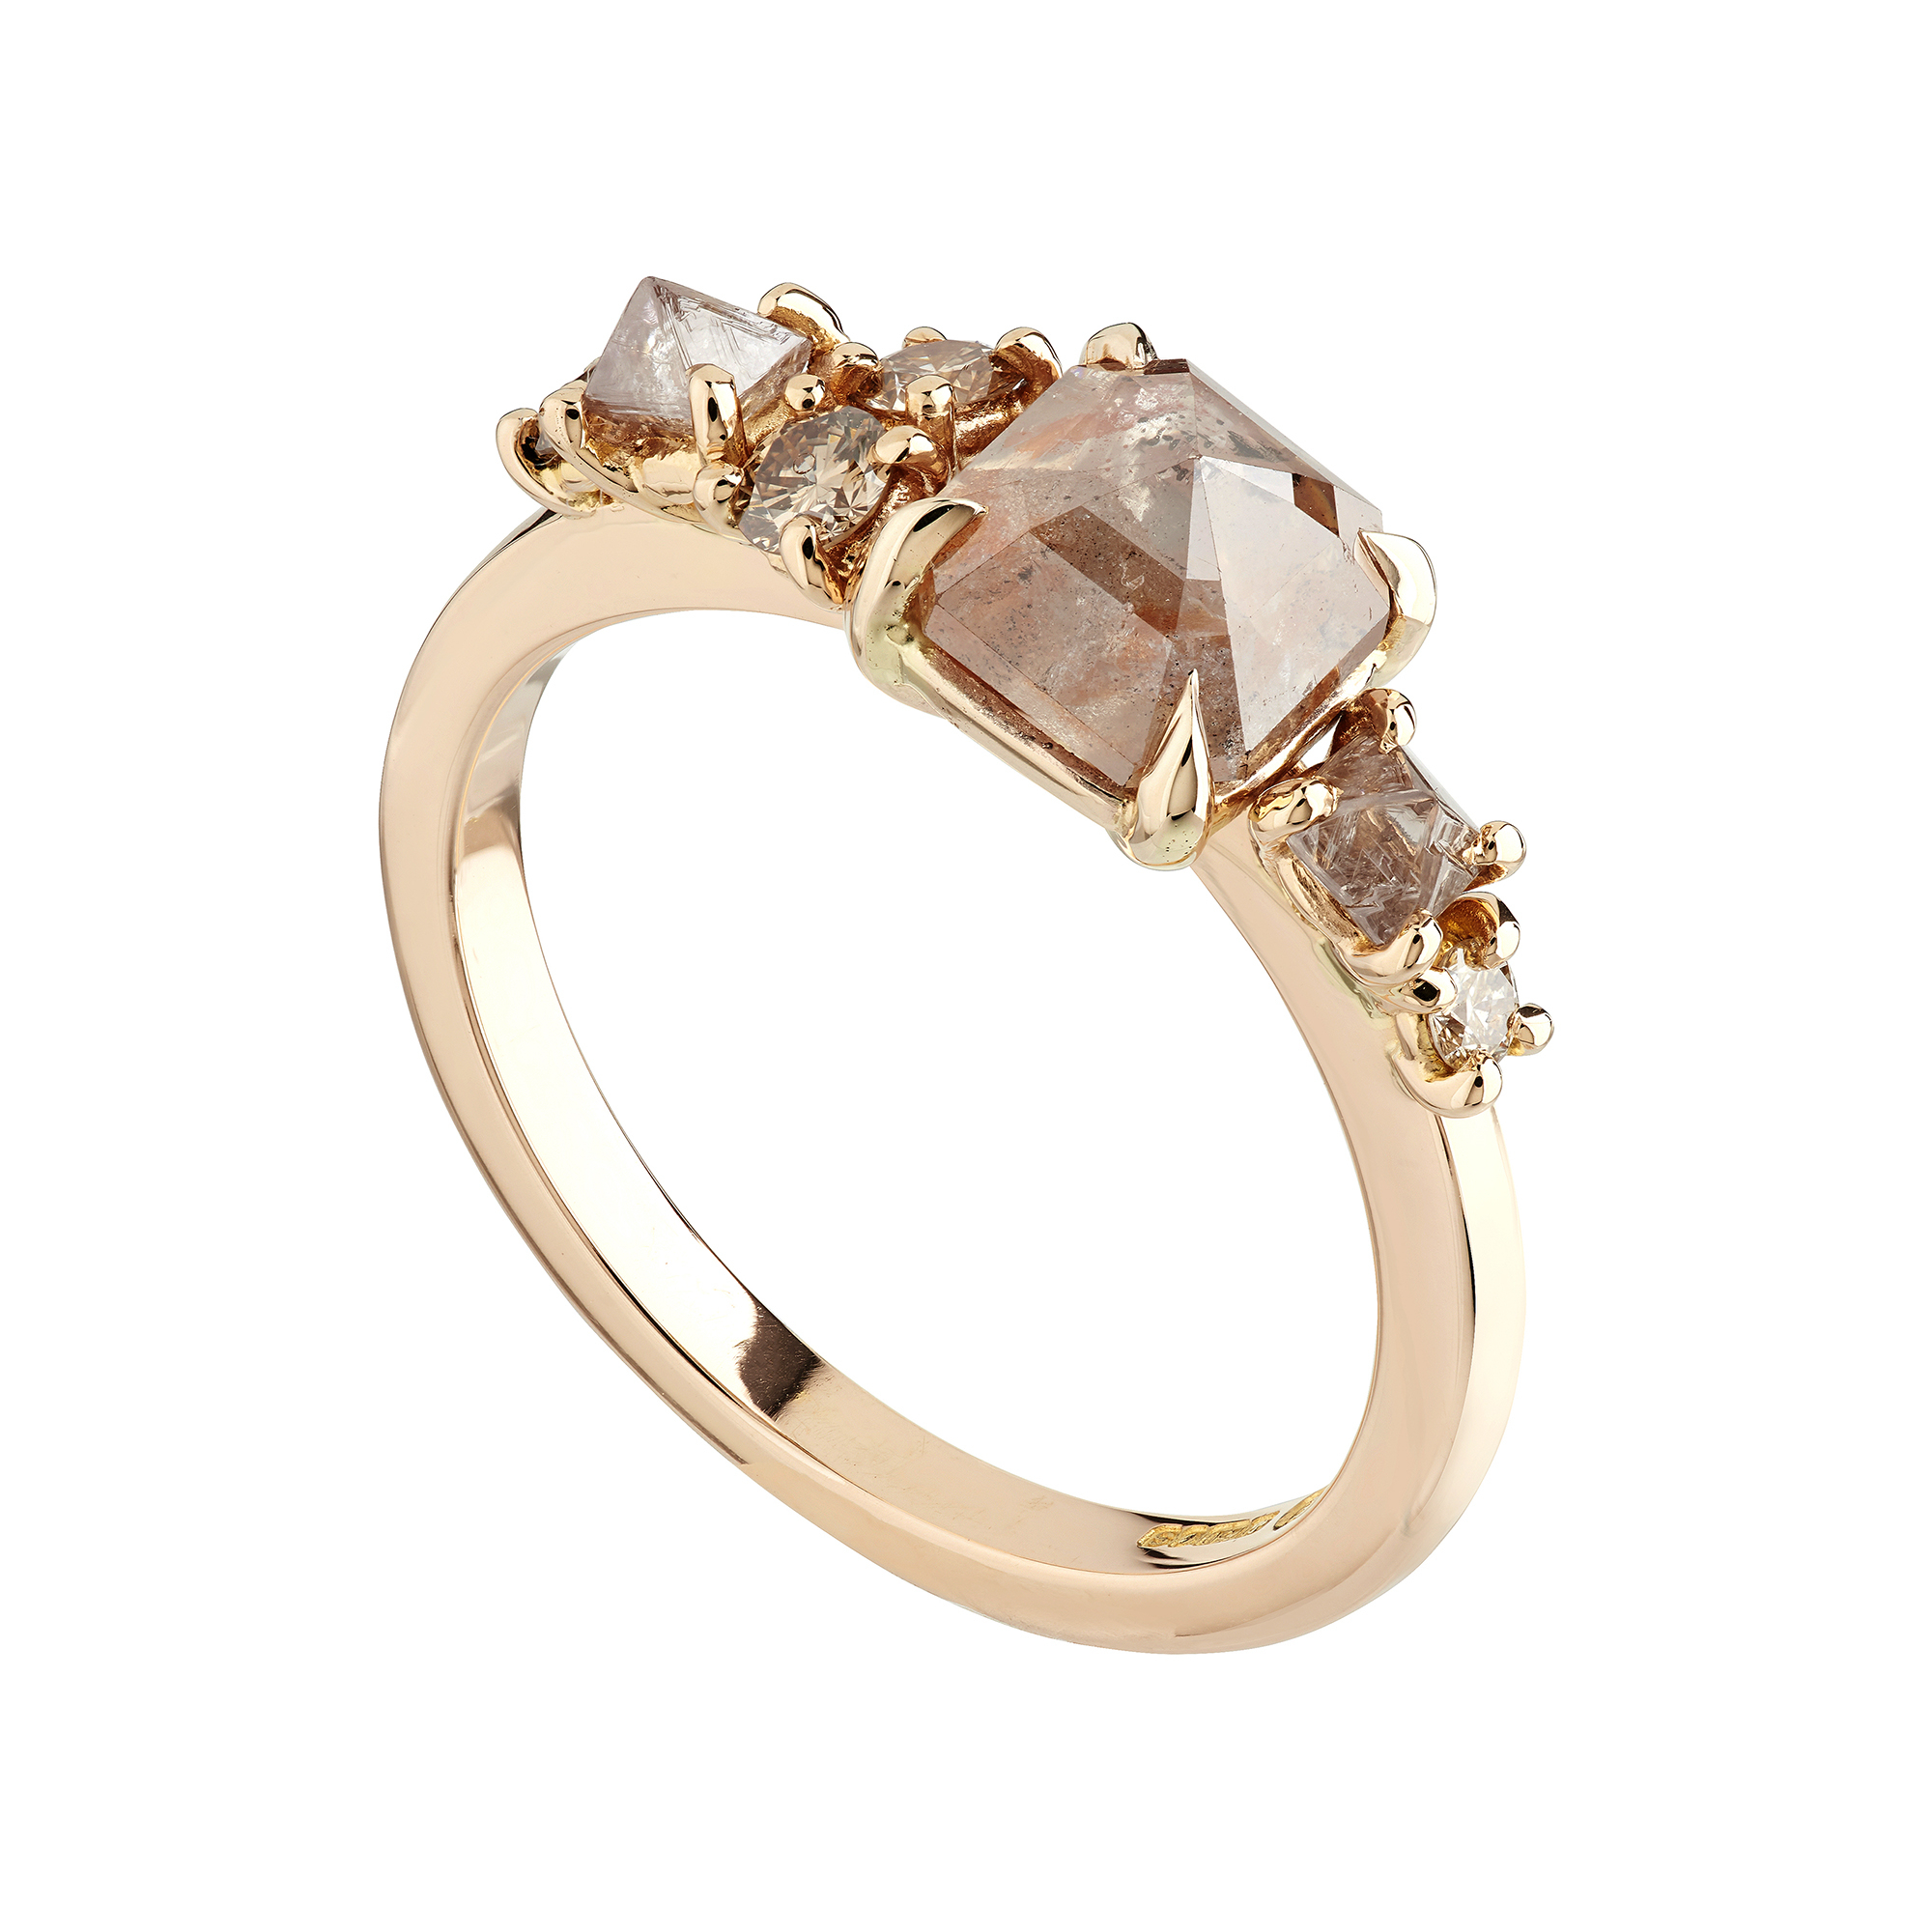 18ct Rose Gold Rose Cut And Rough Cut Diamond Cluster Ring With Champagne Diamonds In Most Recently Released Champagne Diamond Anniversary Bands In Rose Gold (View 16 of 25)